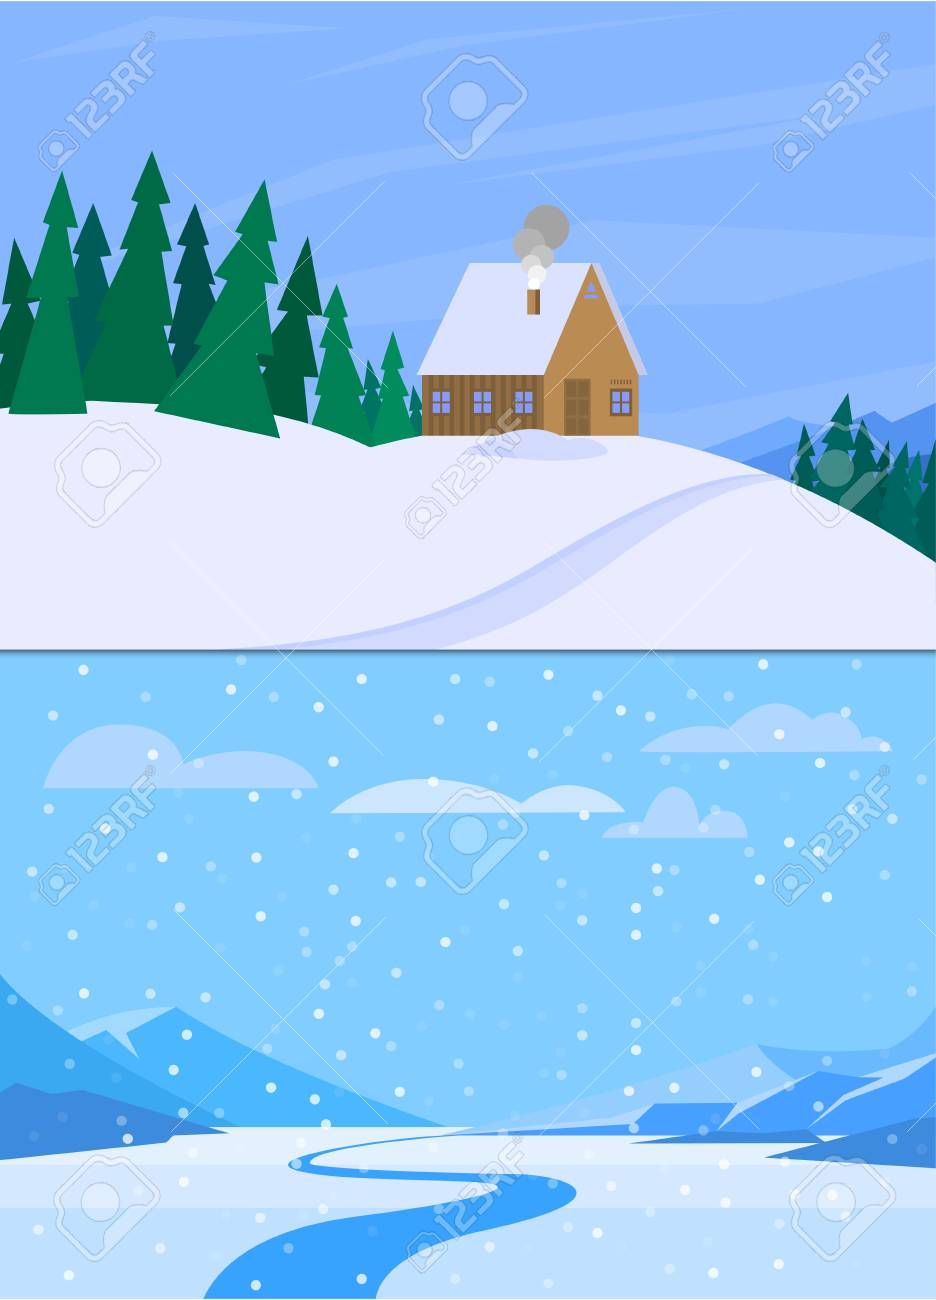 Download Wallpaper Mountain Cartoon - 90502407-winter-landscape-with-christmas-tree-mountain-frozen-nature-wallpaper-beautiful-natural-vector-illus  Pic_776291.jpg